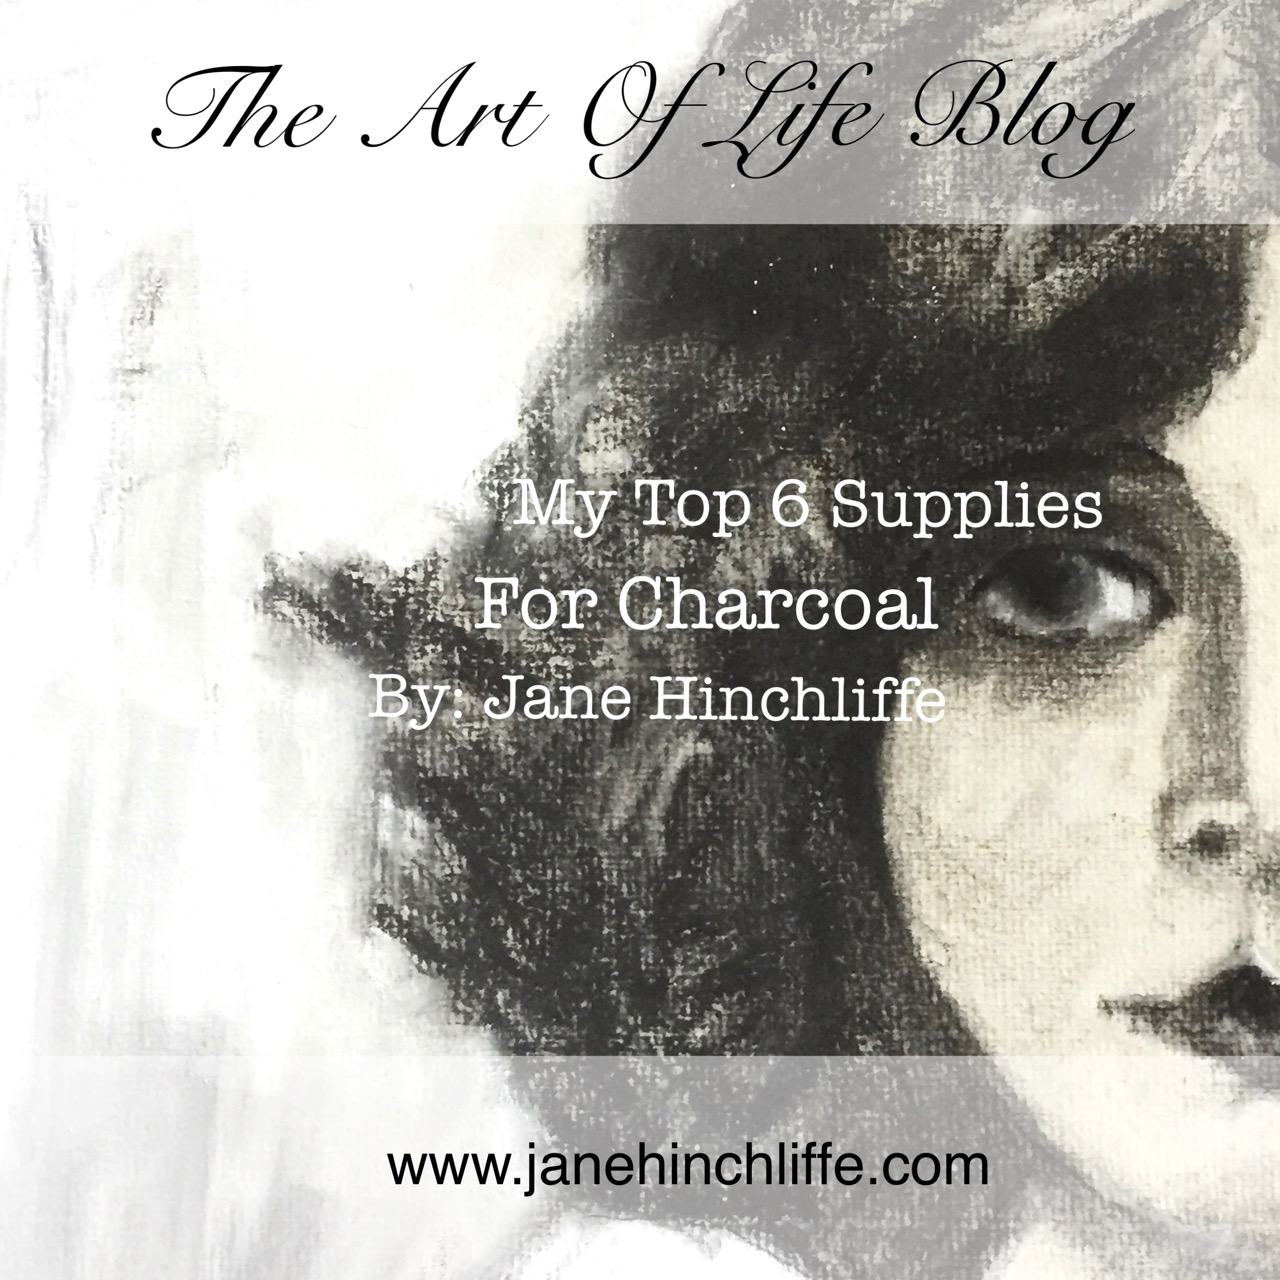 my top 6 supplies for charcoal